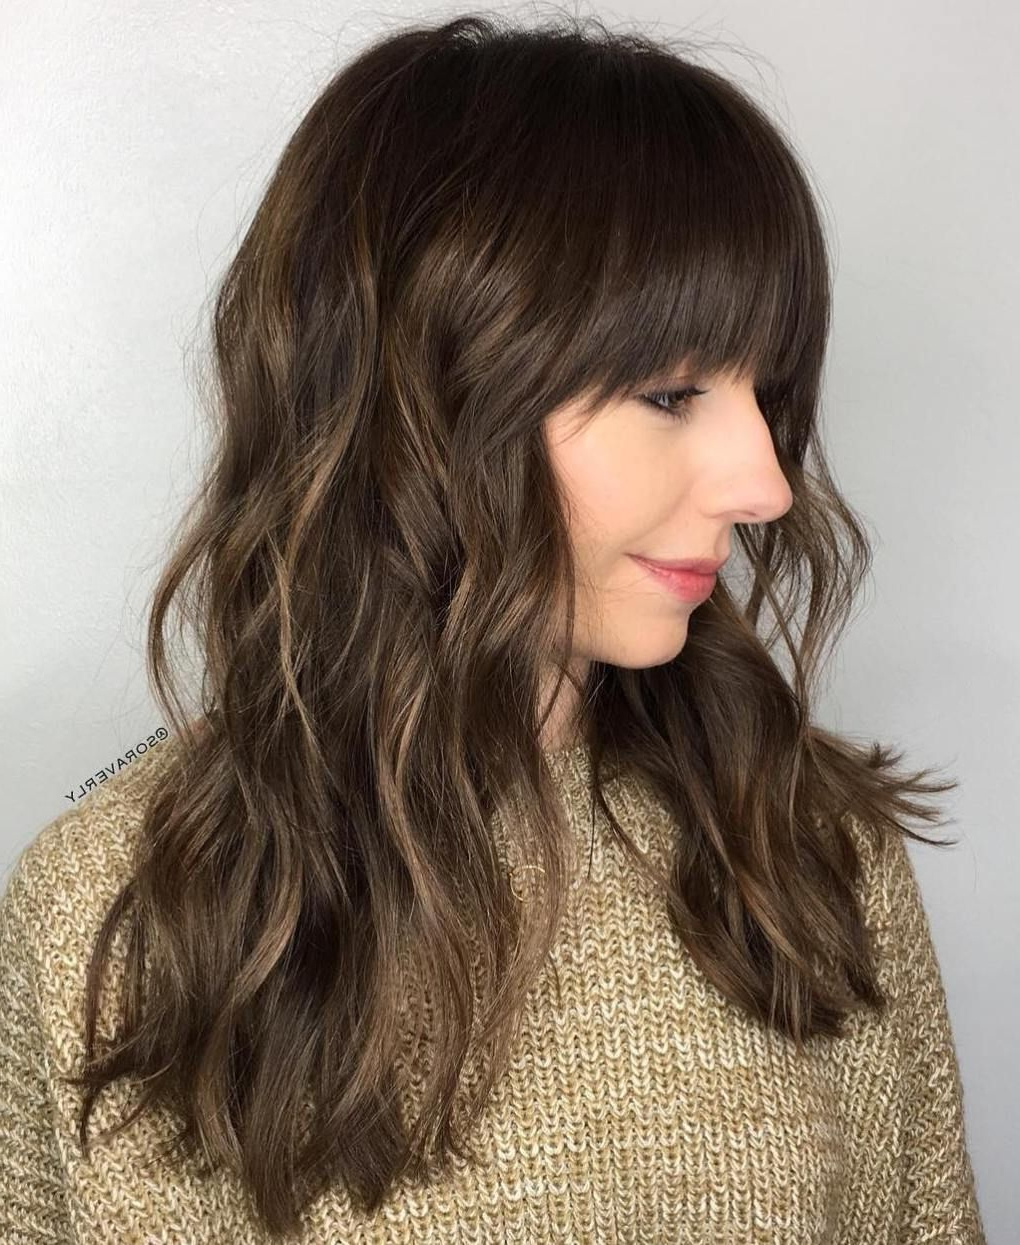 Pin On Hairstyles Within Current Razor Haircuts With Long Bangs (View 6 of 20)